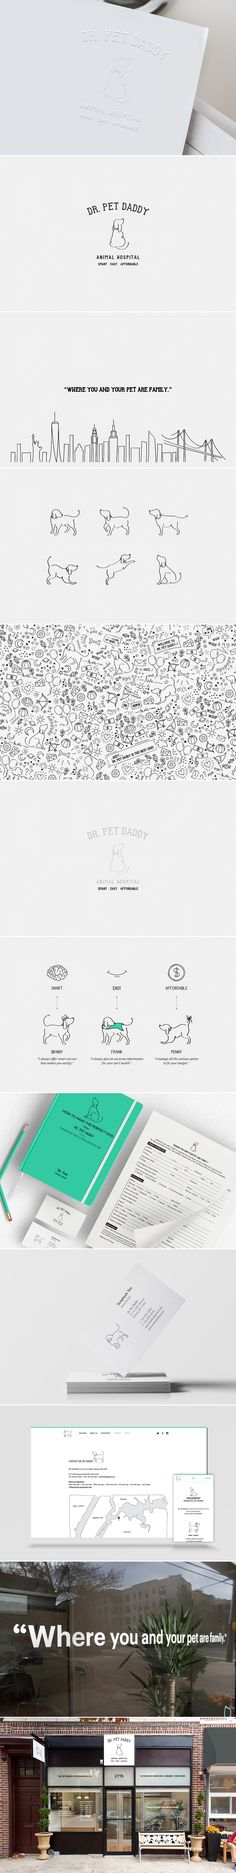 [ Dr. Pet Daddy ] [ Credit: Hyun Sul ] [ Graphic Design, Identity Design, Logo Design, Package Design, Editorial Design, Art Direction, Branding, Web Design, Photography, Interior Design, Illustration, Drawing ]